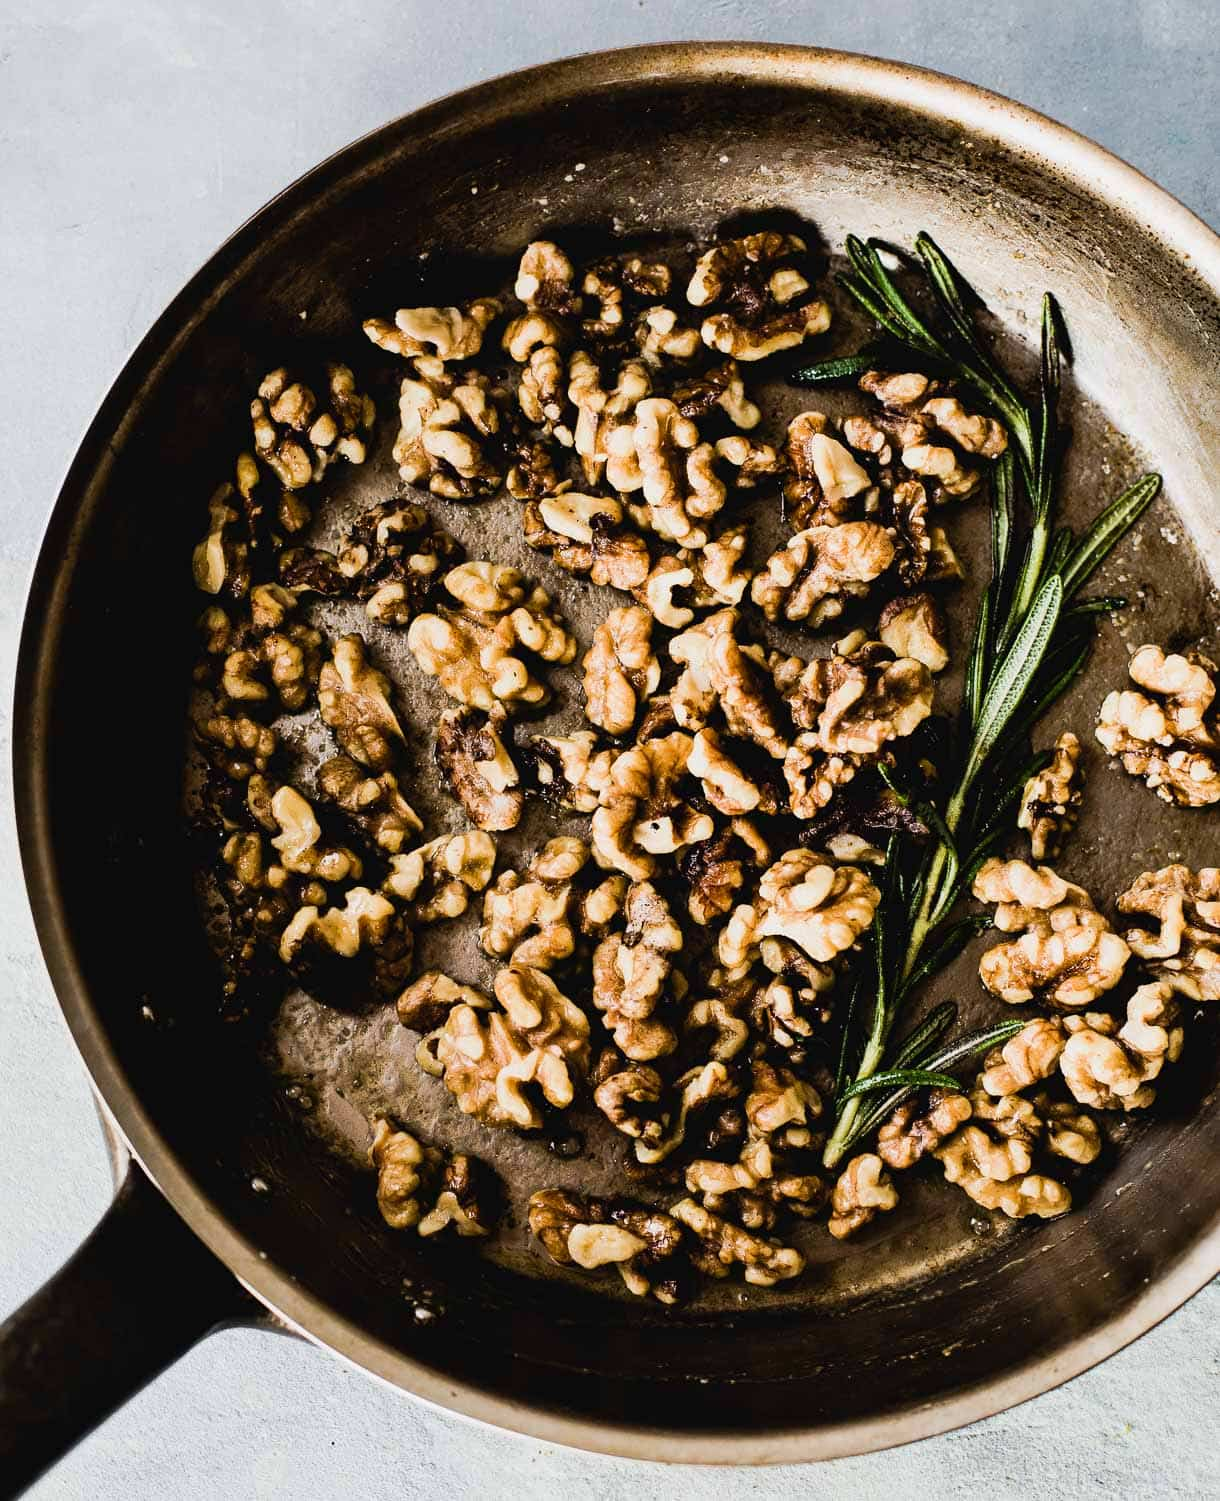 Maple Rosemary Walnuts in Pan